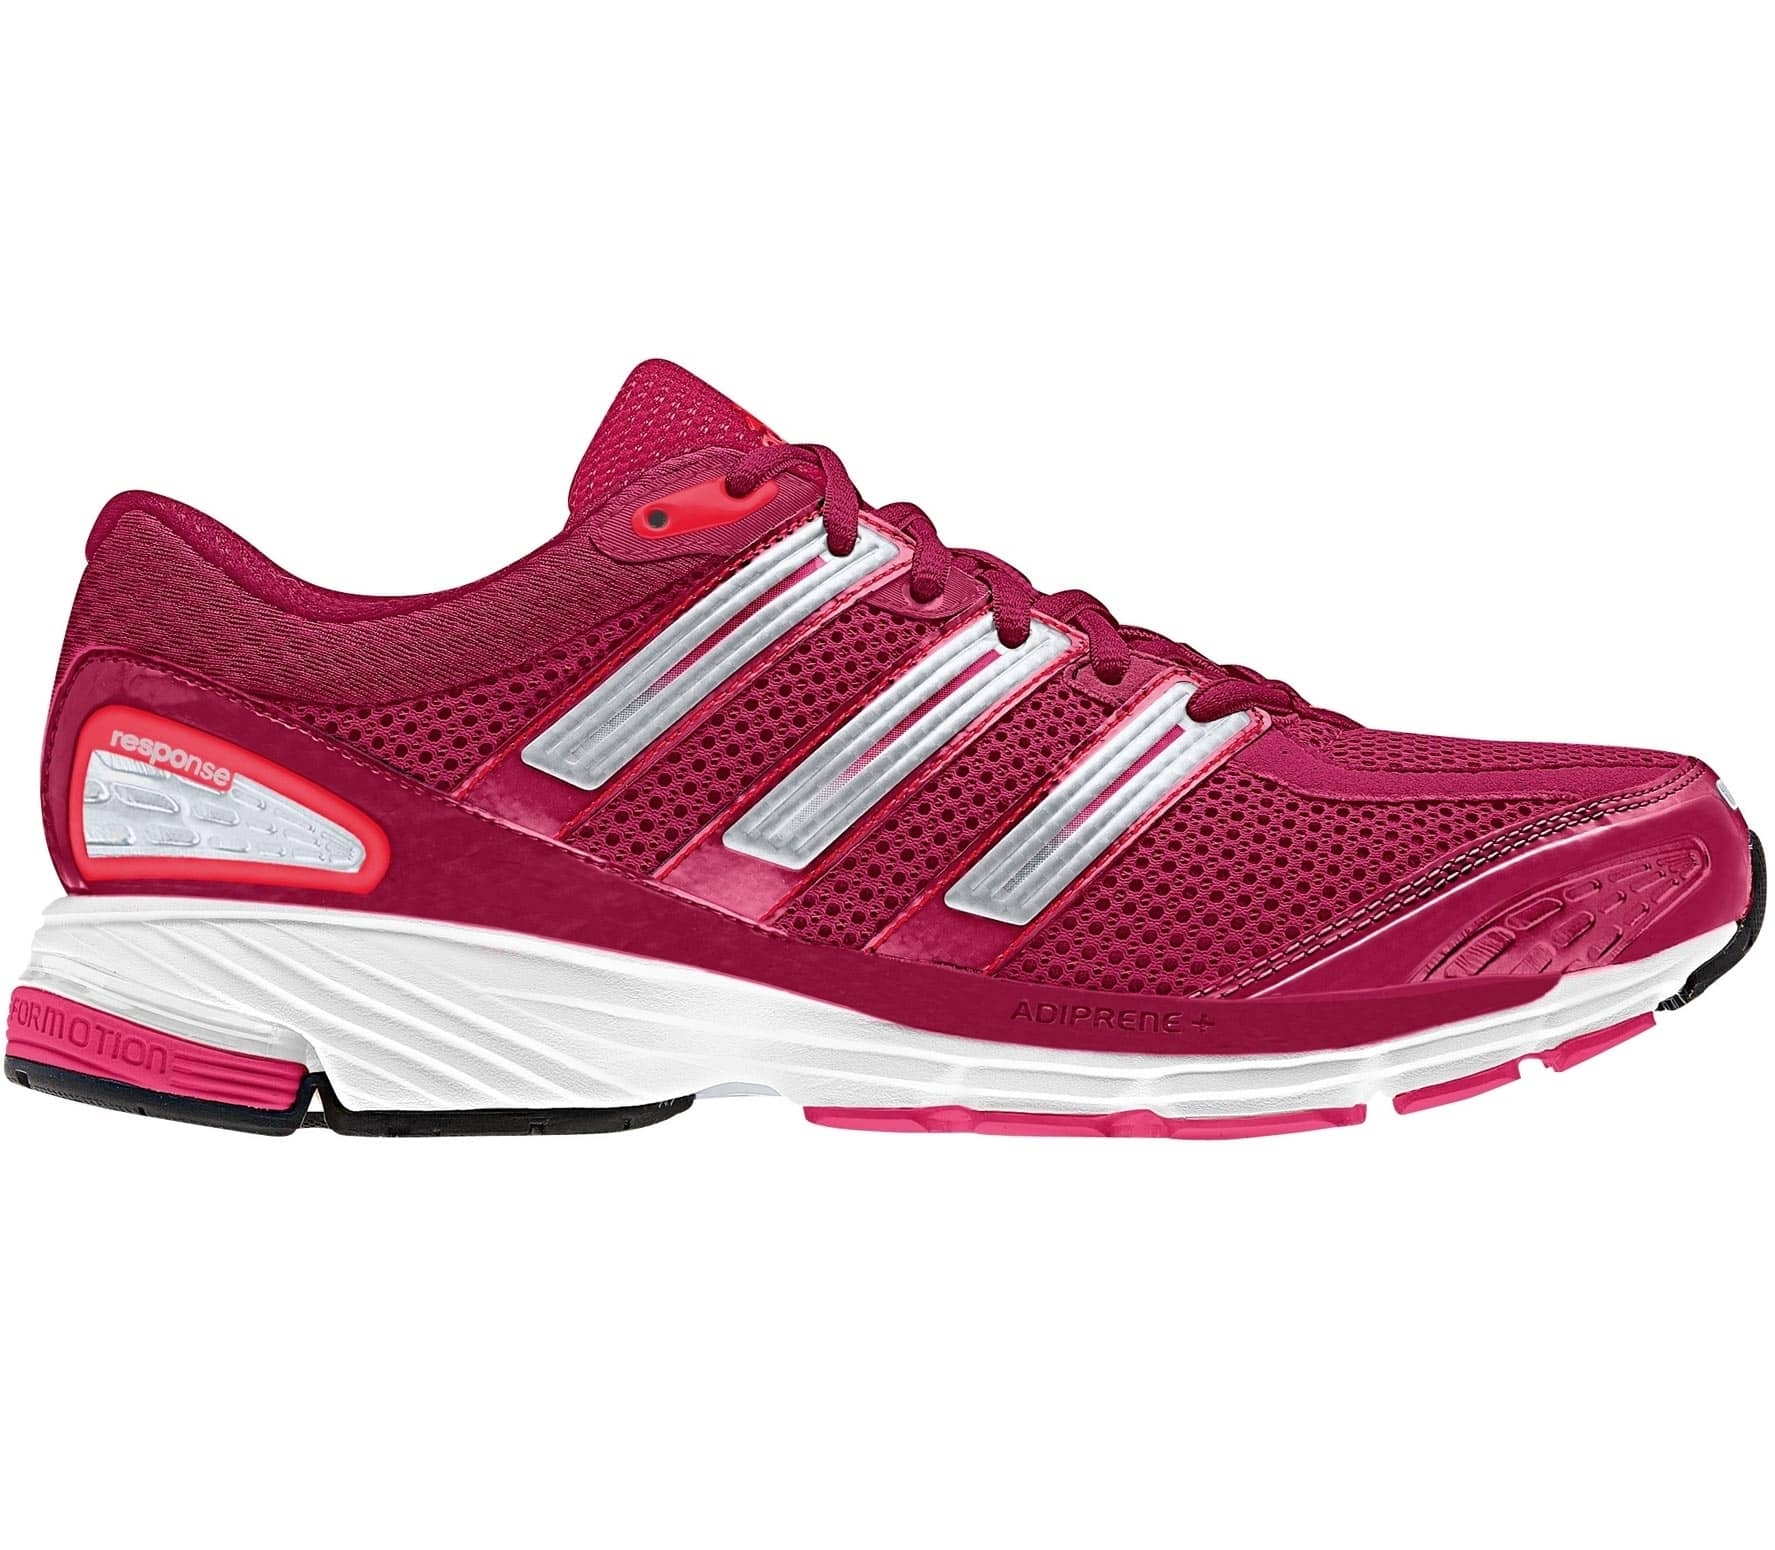 Adidas Response Running Shoes Review